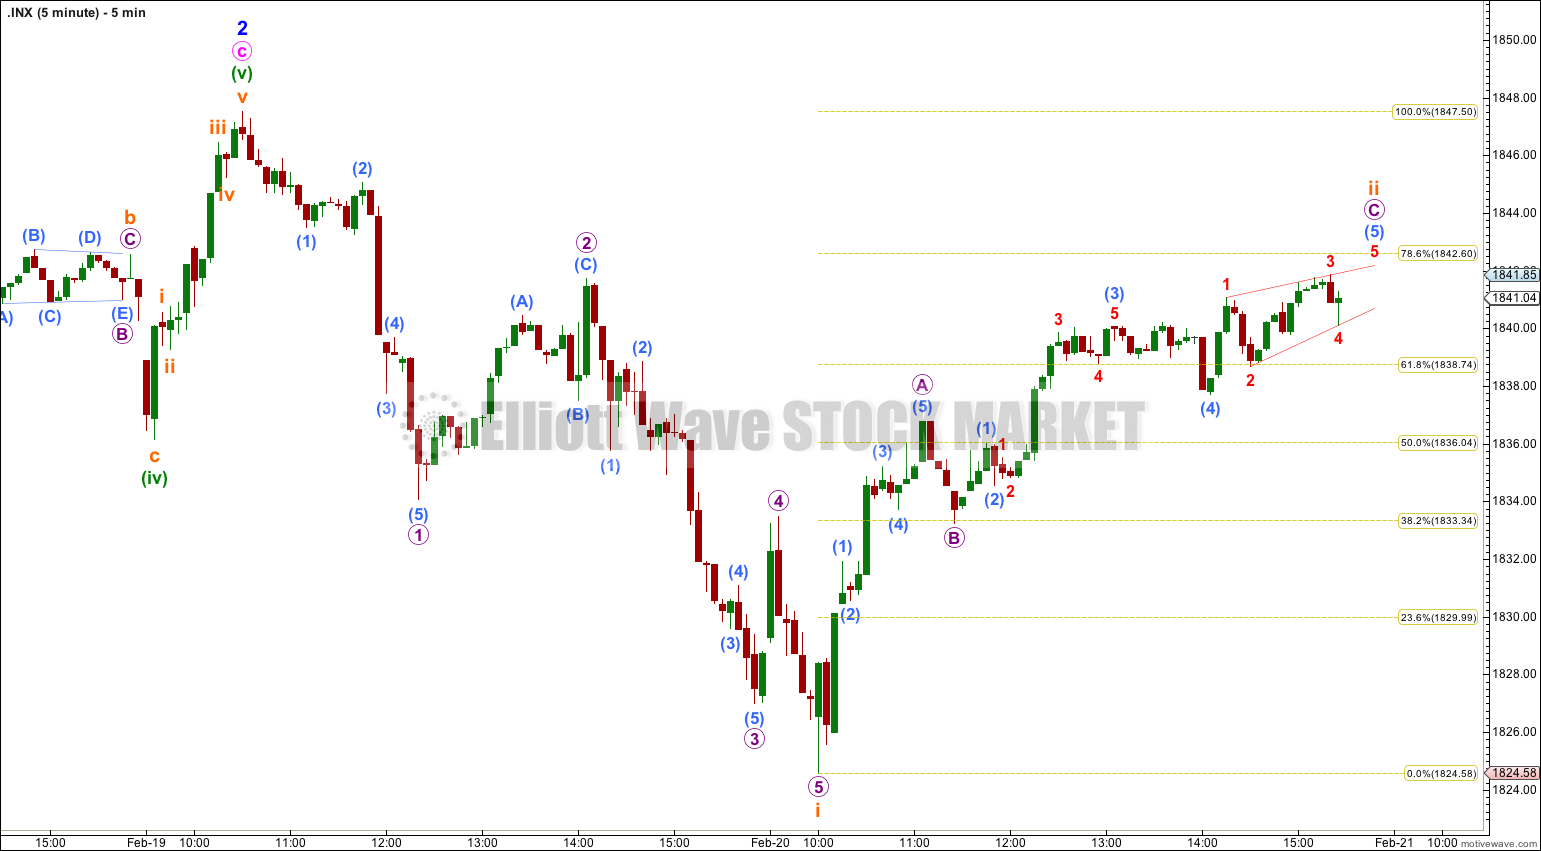 S&P 500 hourly 2013